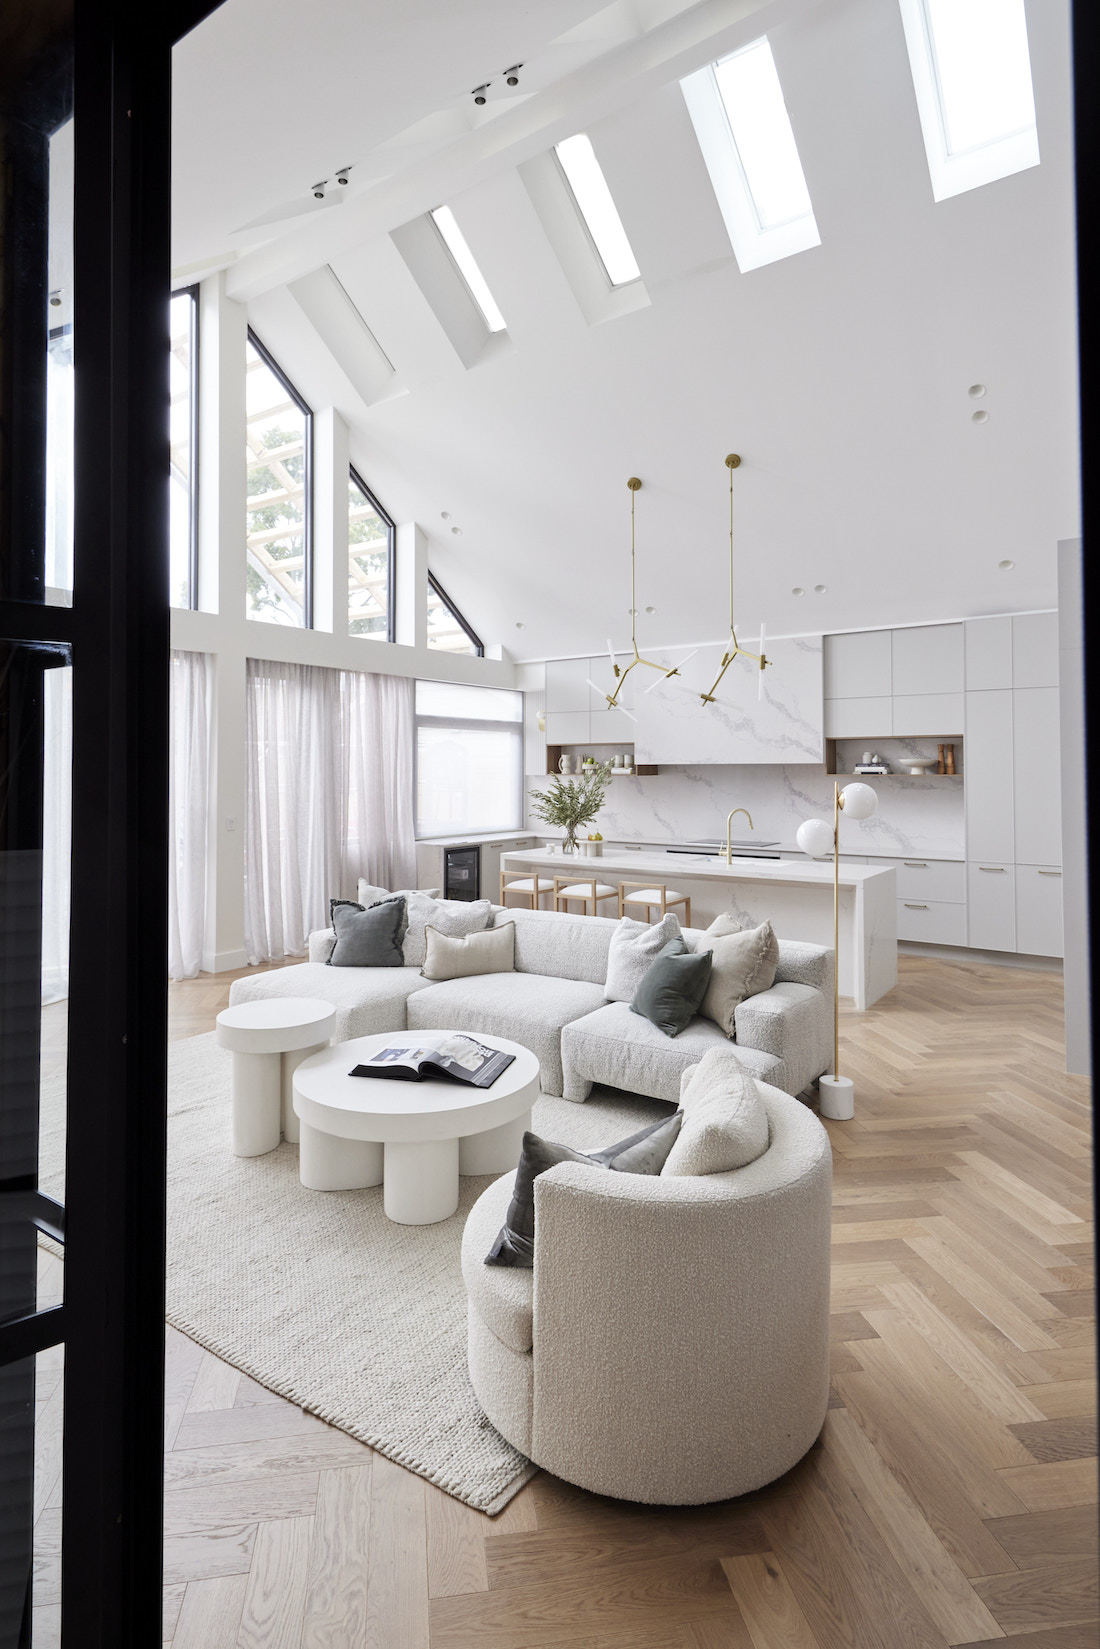 Living space seating area with view to kitchen